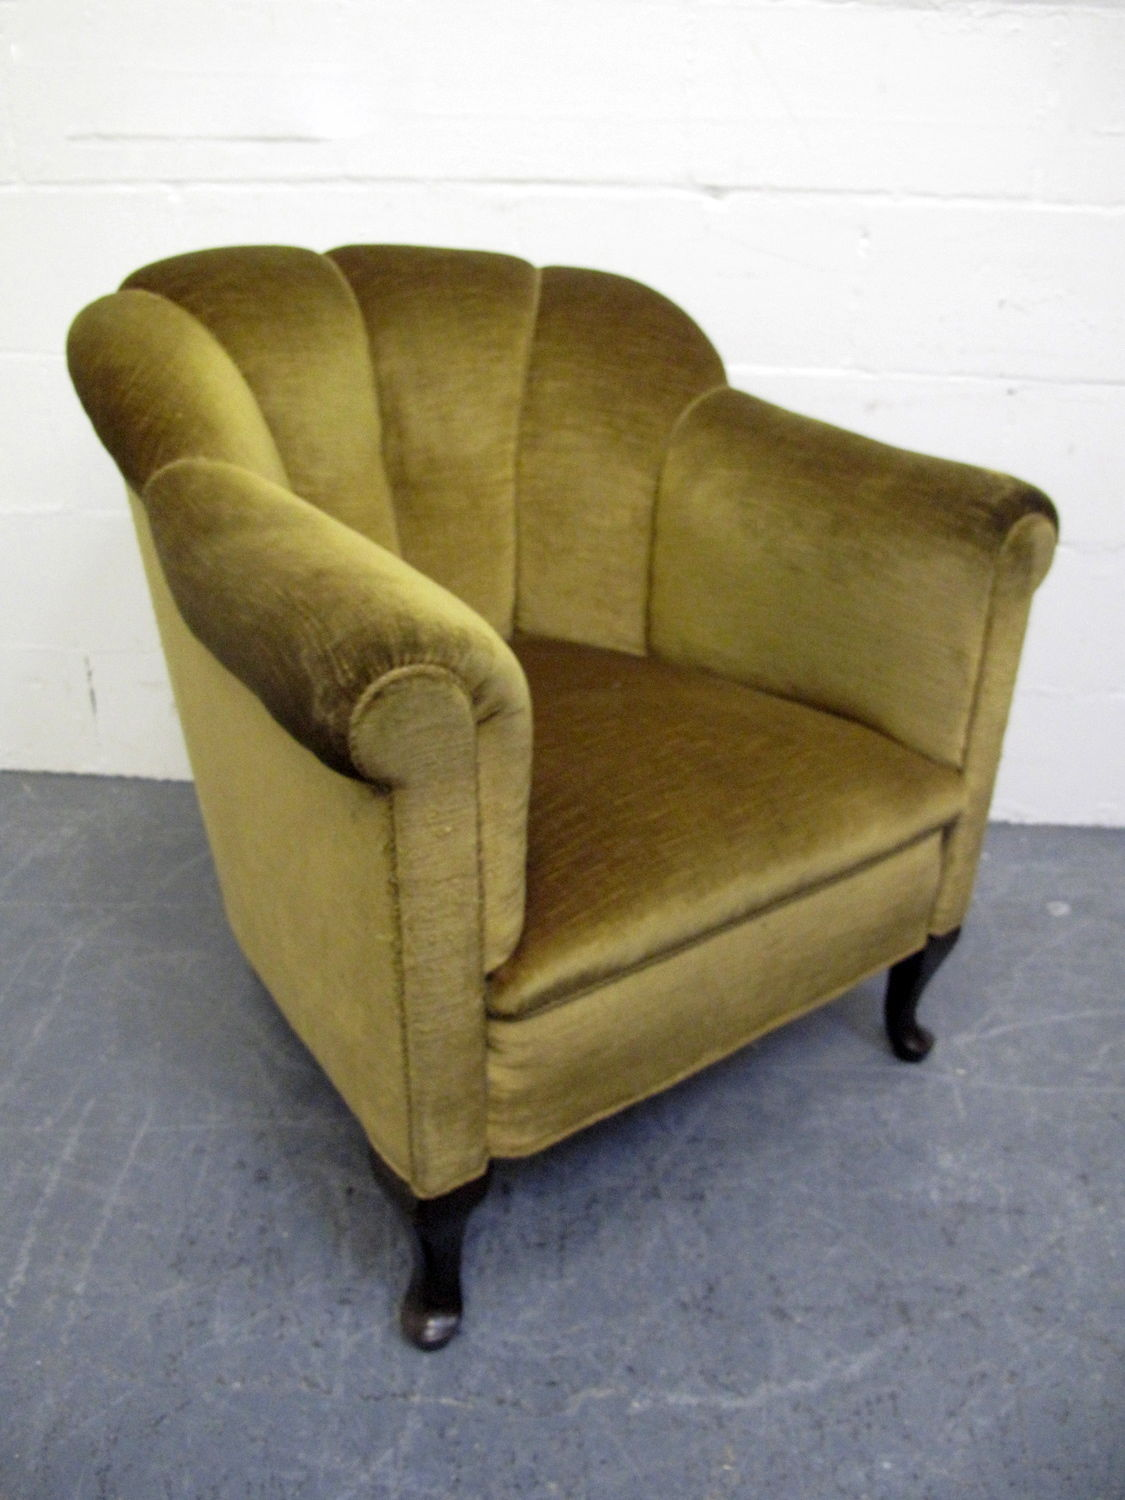 vintage arm chair rolling chairs for office the hunt perfect armchair sarah akwisombe art deco shell green velvet